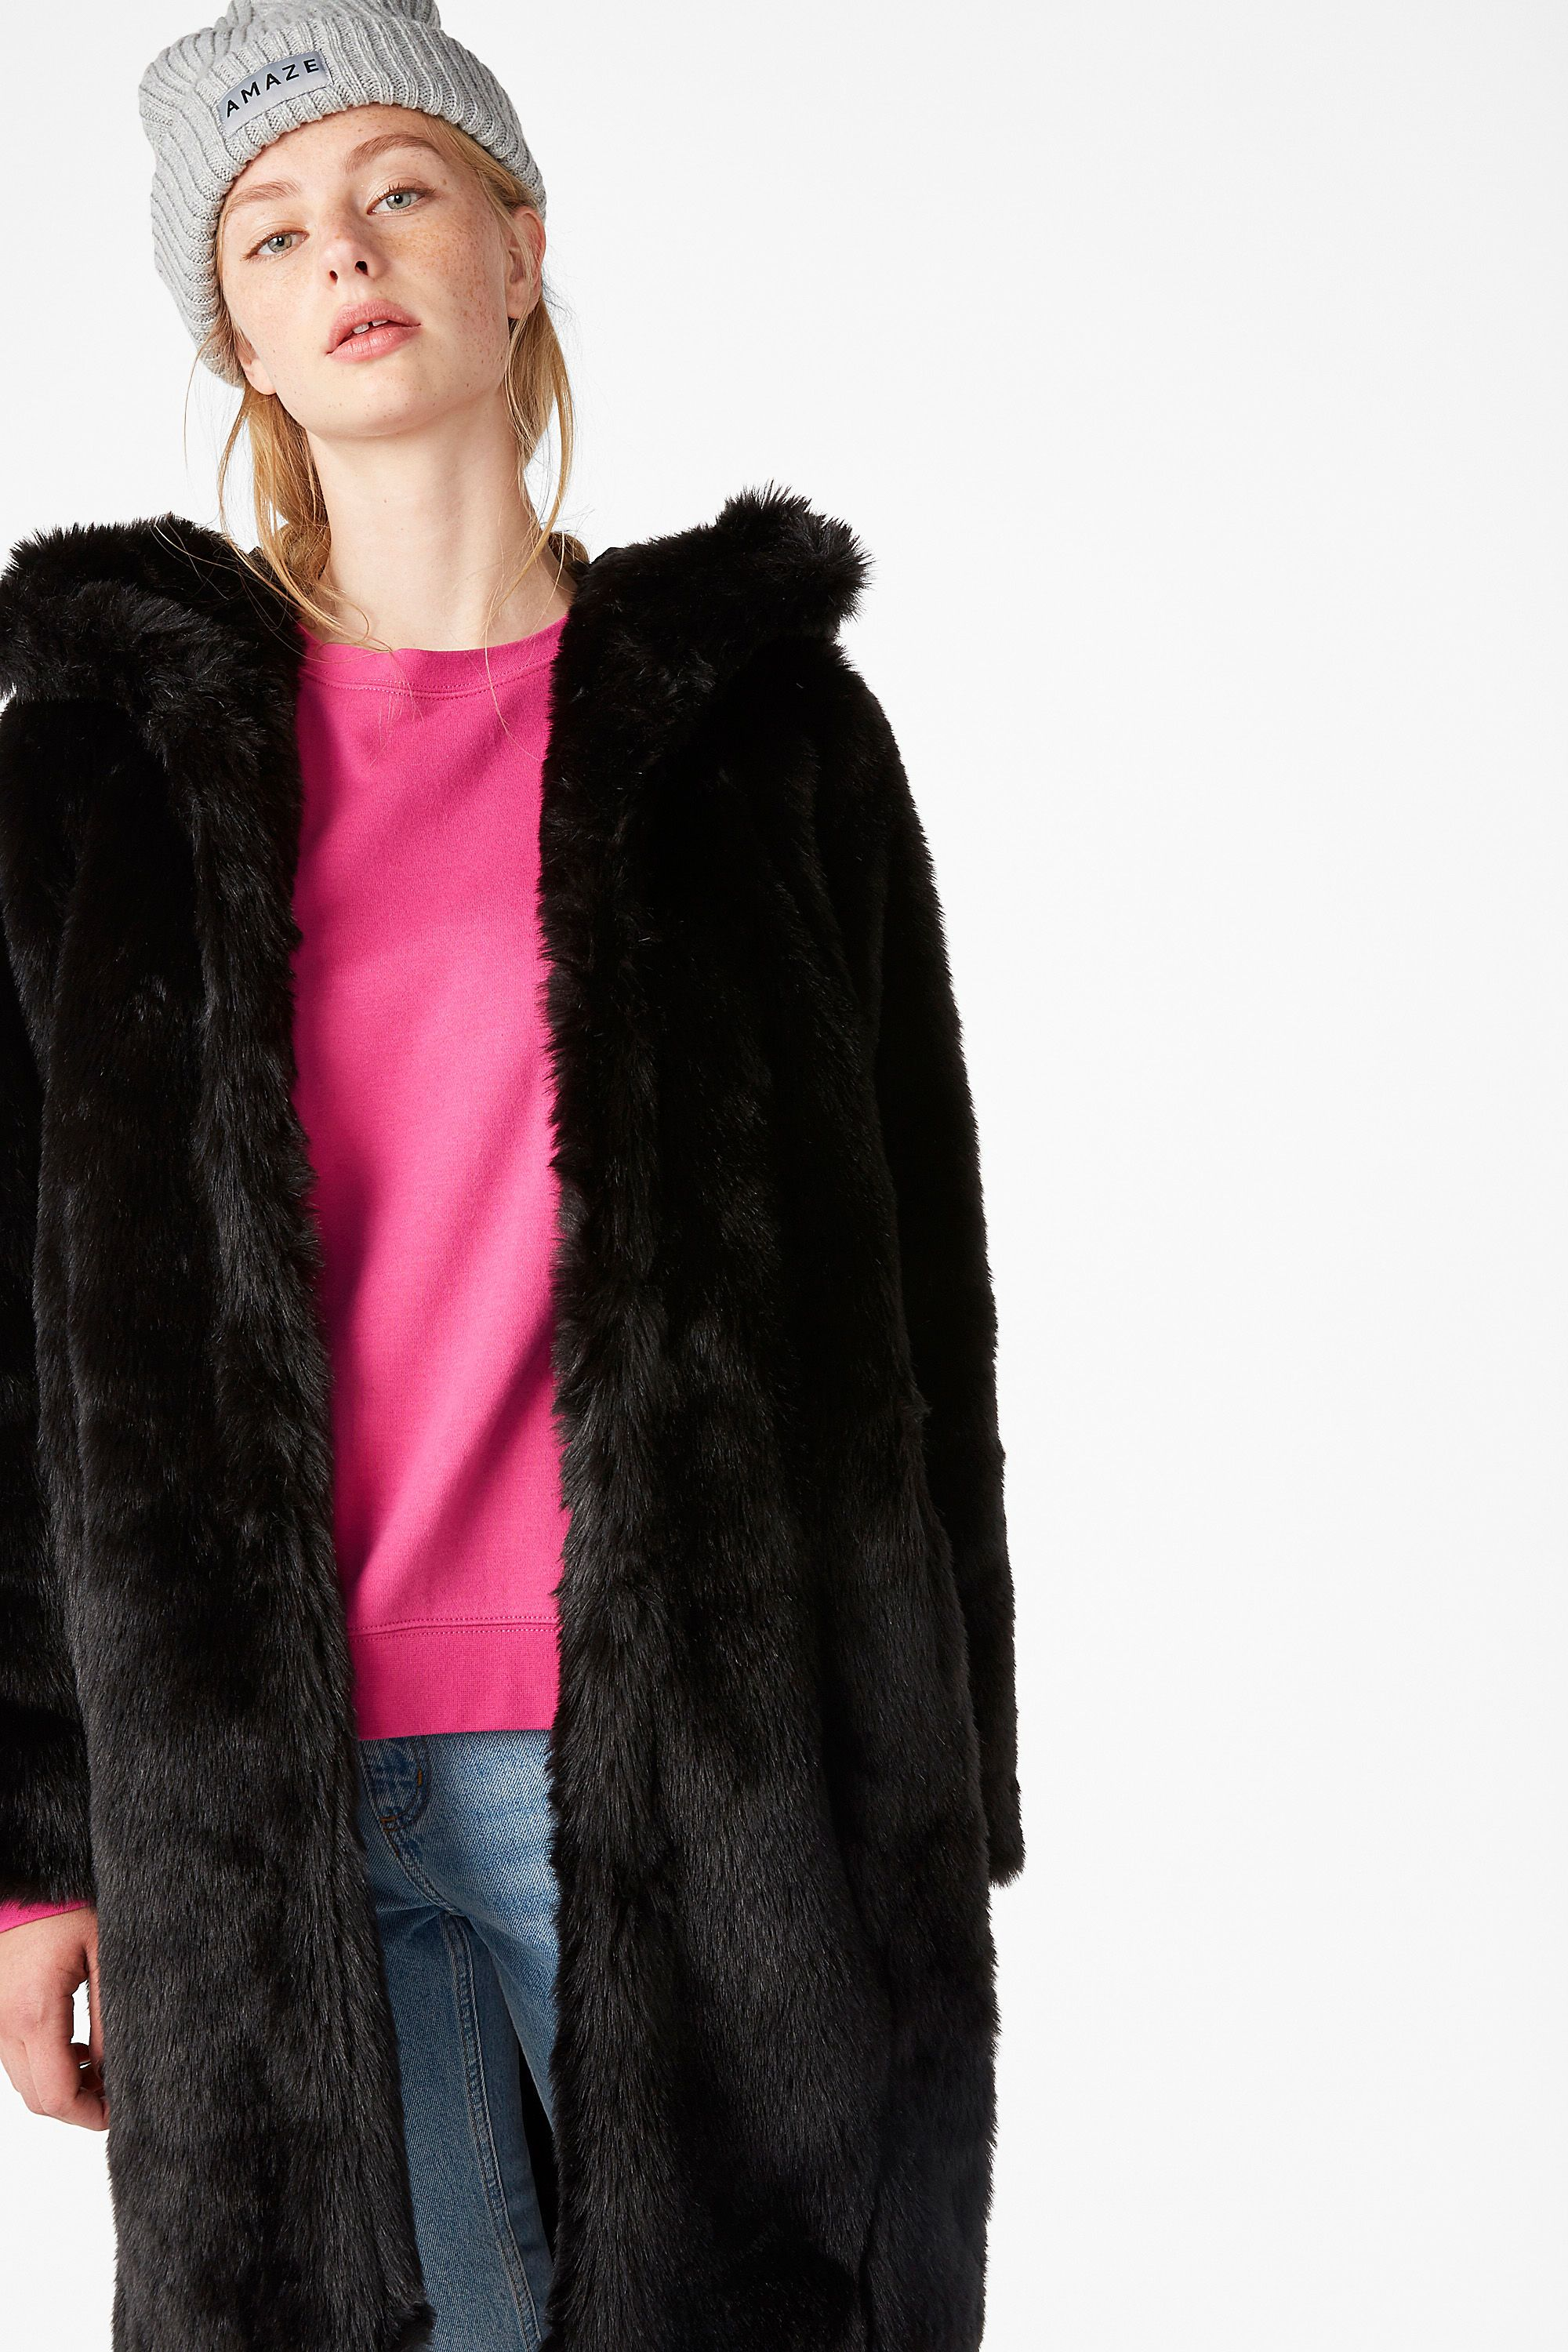 a4bf4dfeac0 <p>A legendary black faux fur coat with a fur hood - the stuff of winter  dreams! Hook and ring closures and a high neck to keep the cold out. <br  /><br />I